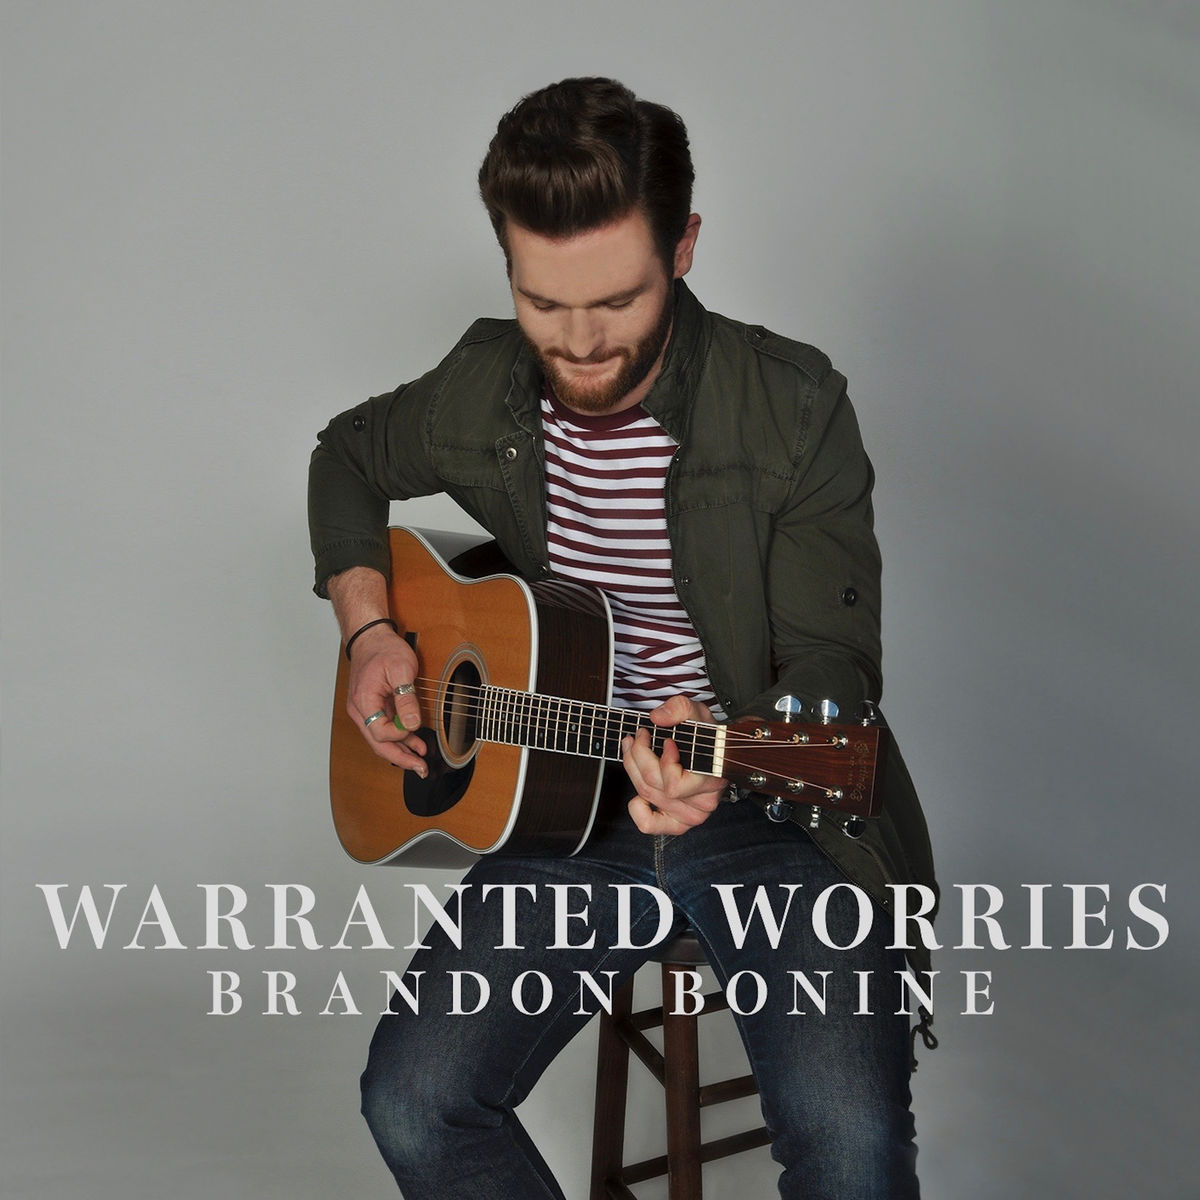 Warranted Worries